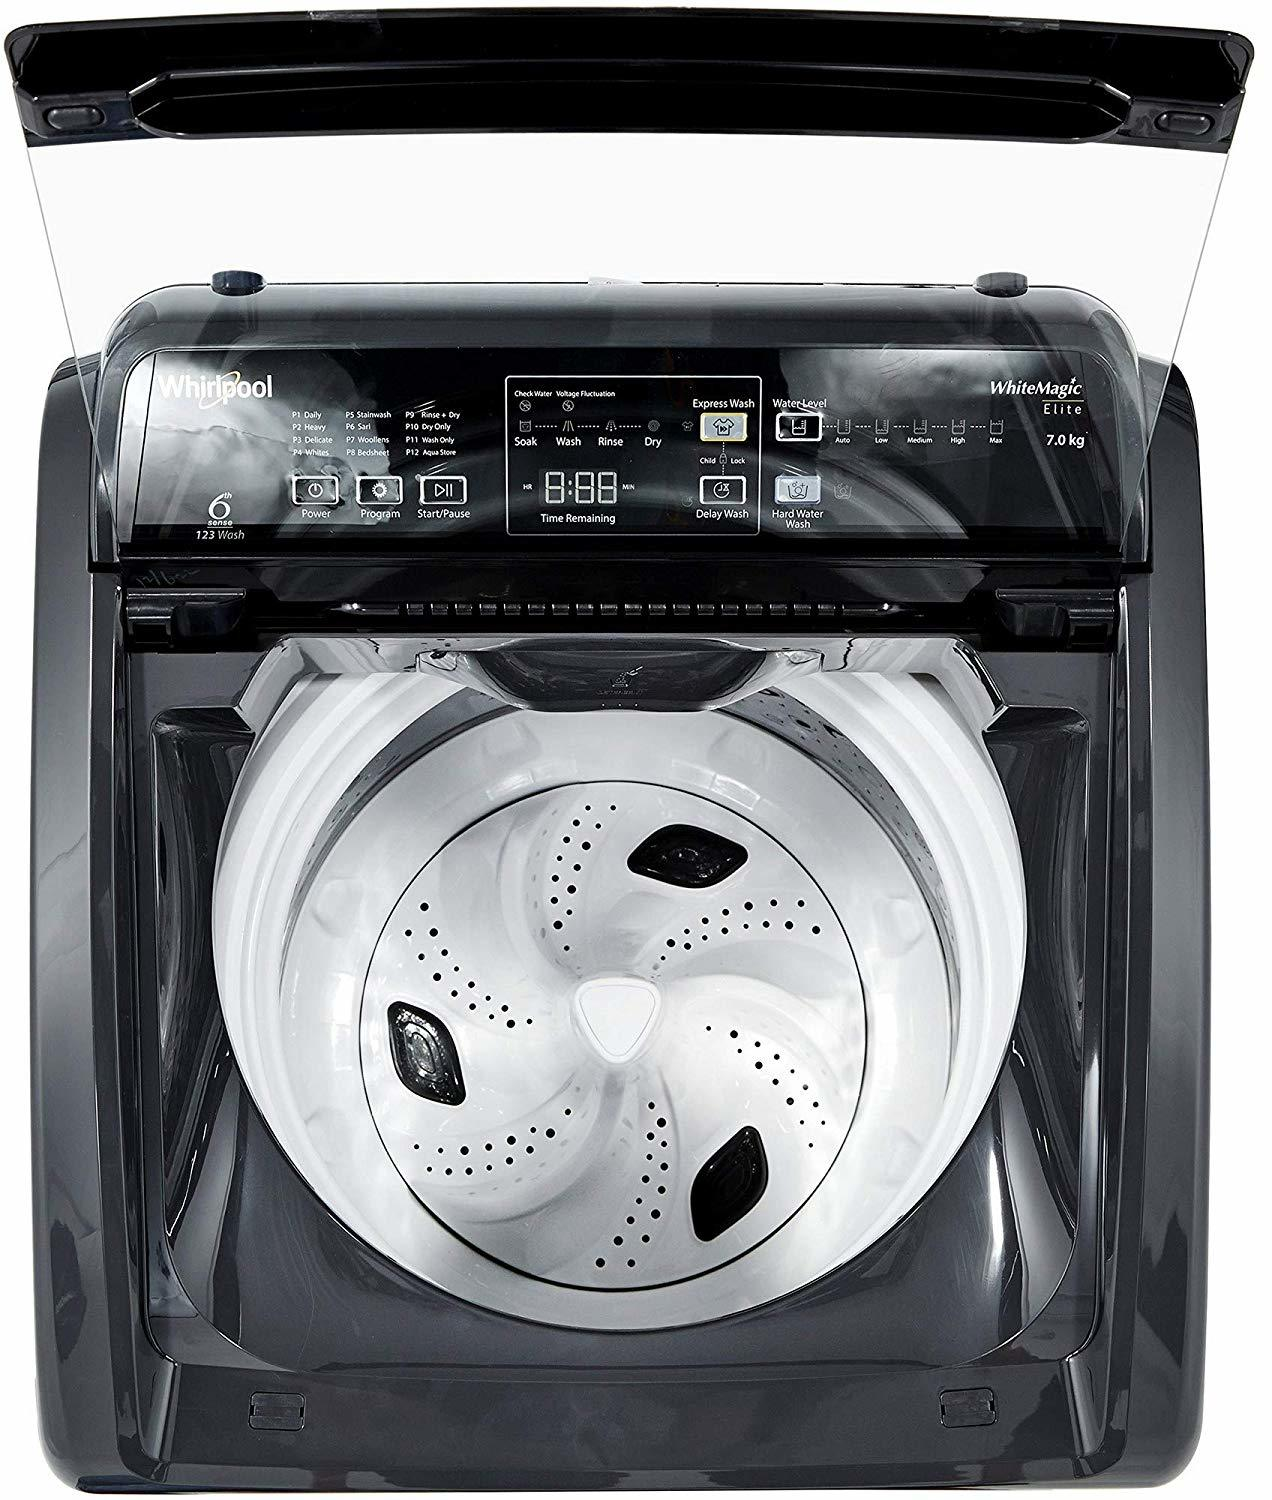 Whirlpool 7 Kg Semi-Automatic Top Loading Washing Machine Superb Atom 70S